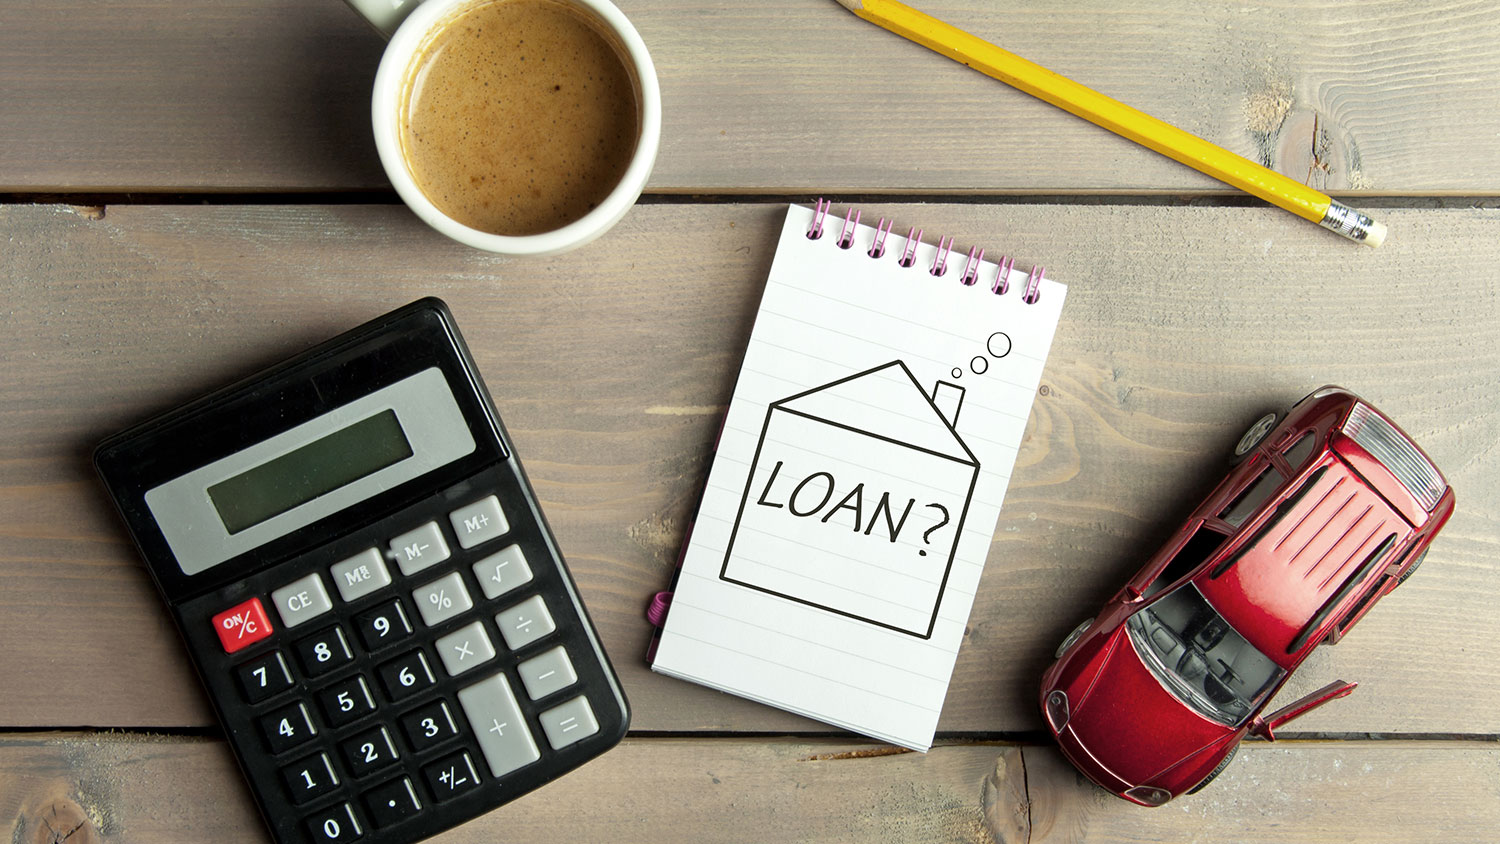 INSTEAD OF A CAR LOAN, CHOOSE A HOME LOAN